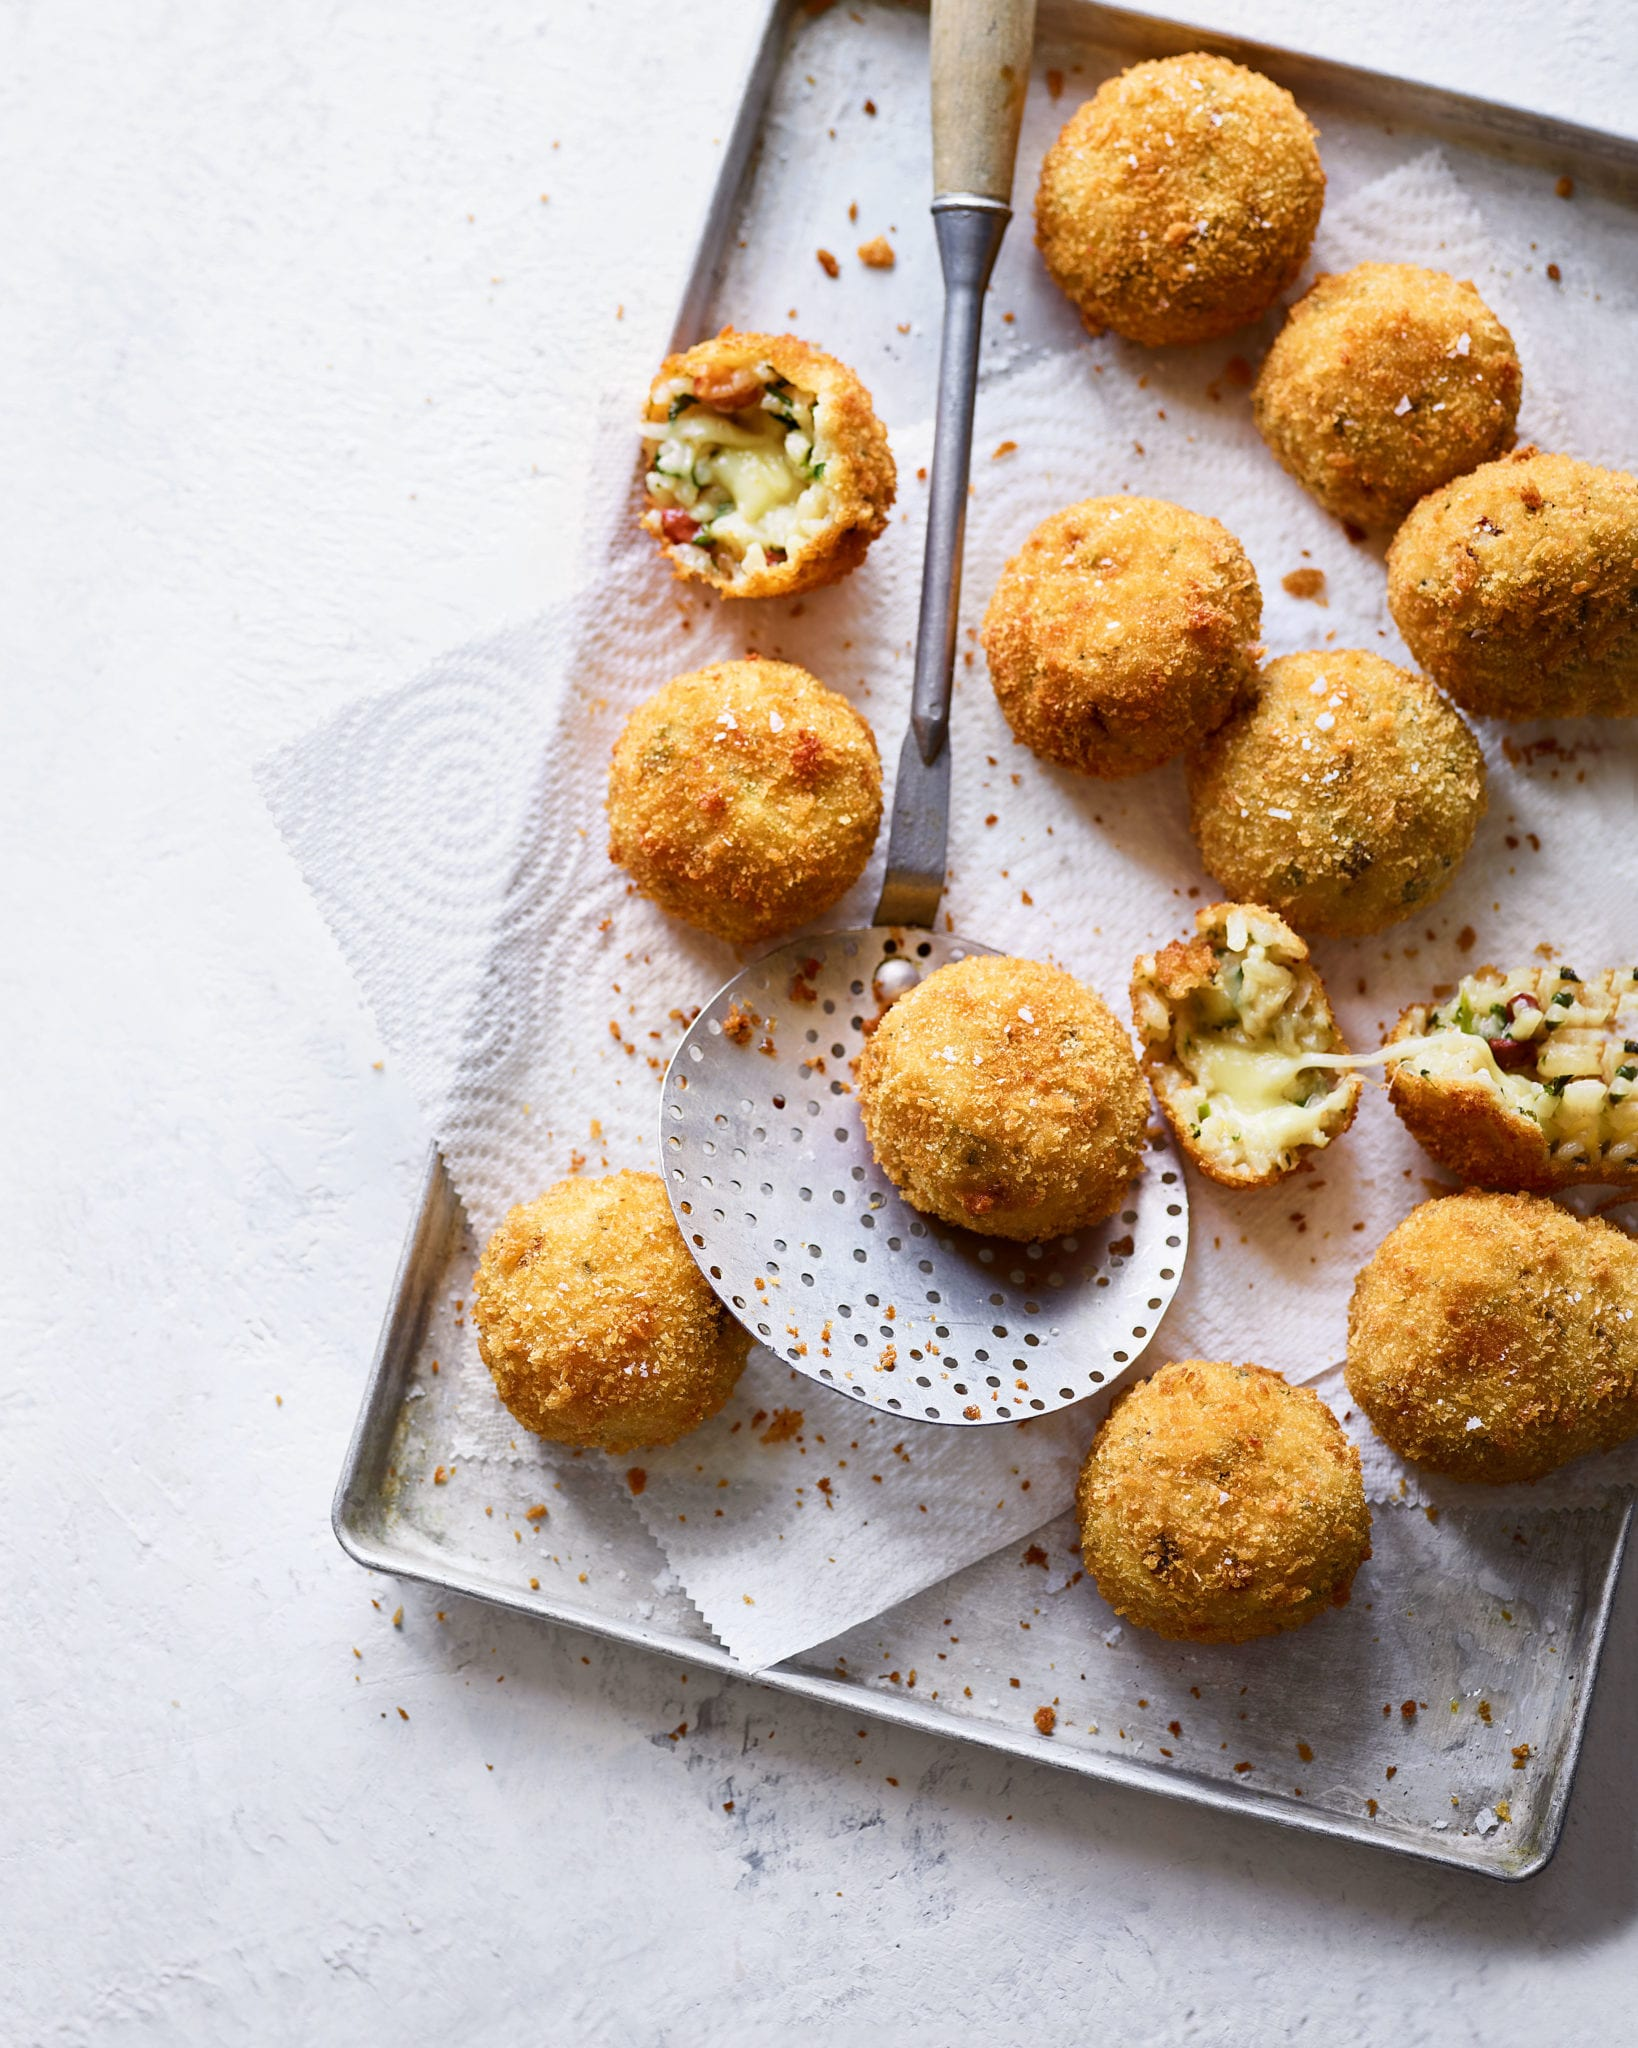 Arancini recipes